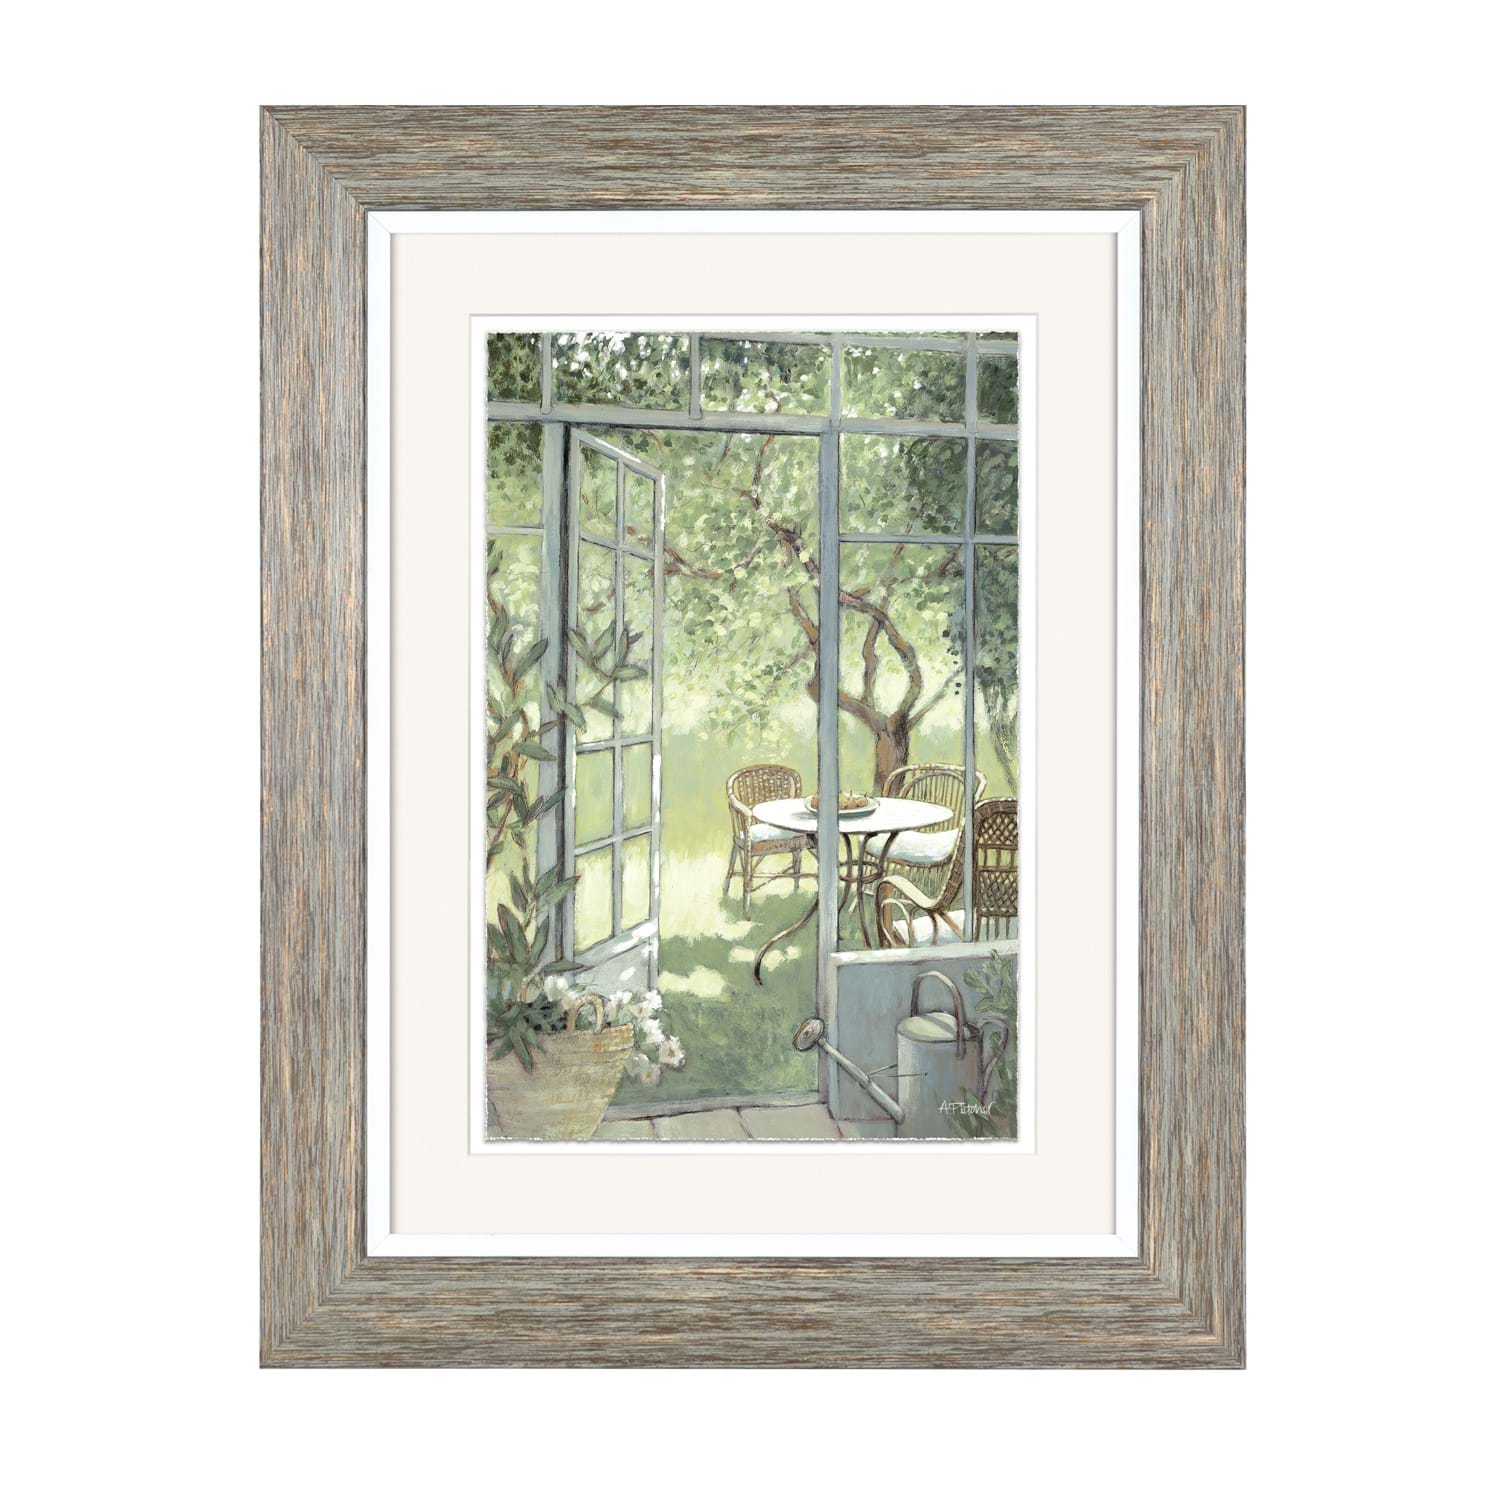 Image of Art Marketing, The Good Life Framed Print